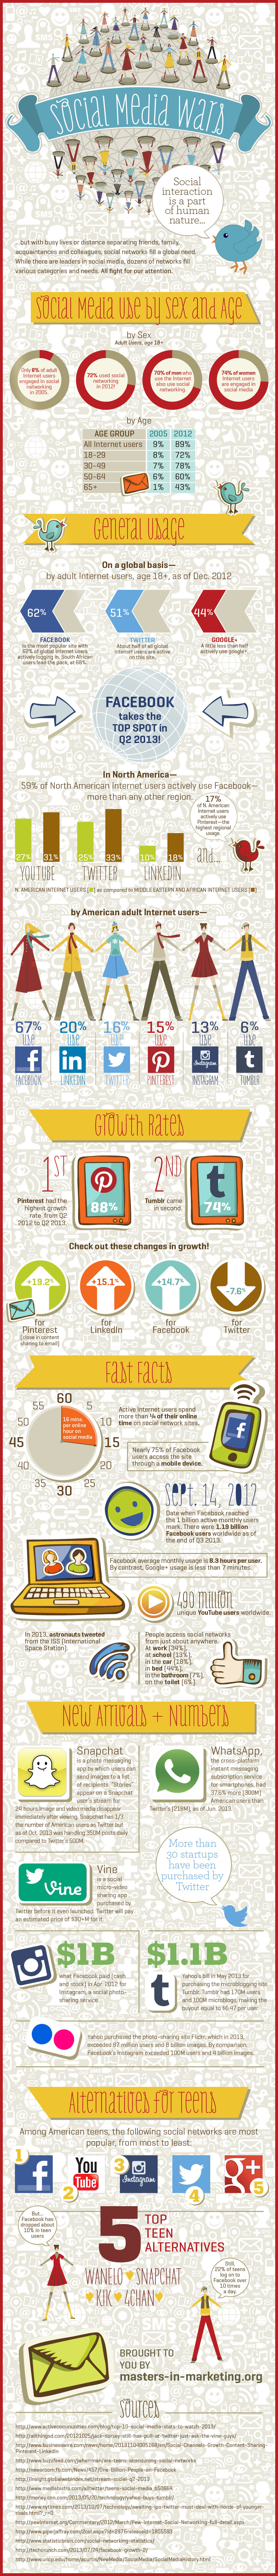 A Global Overview Of Social Media Usage [INFOGRAPHIC]